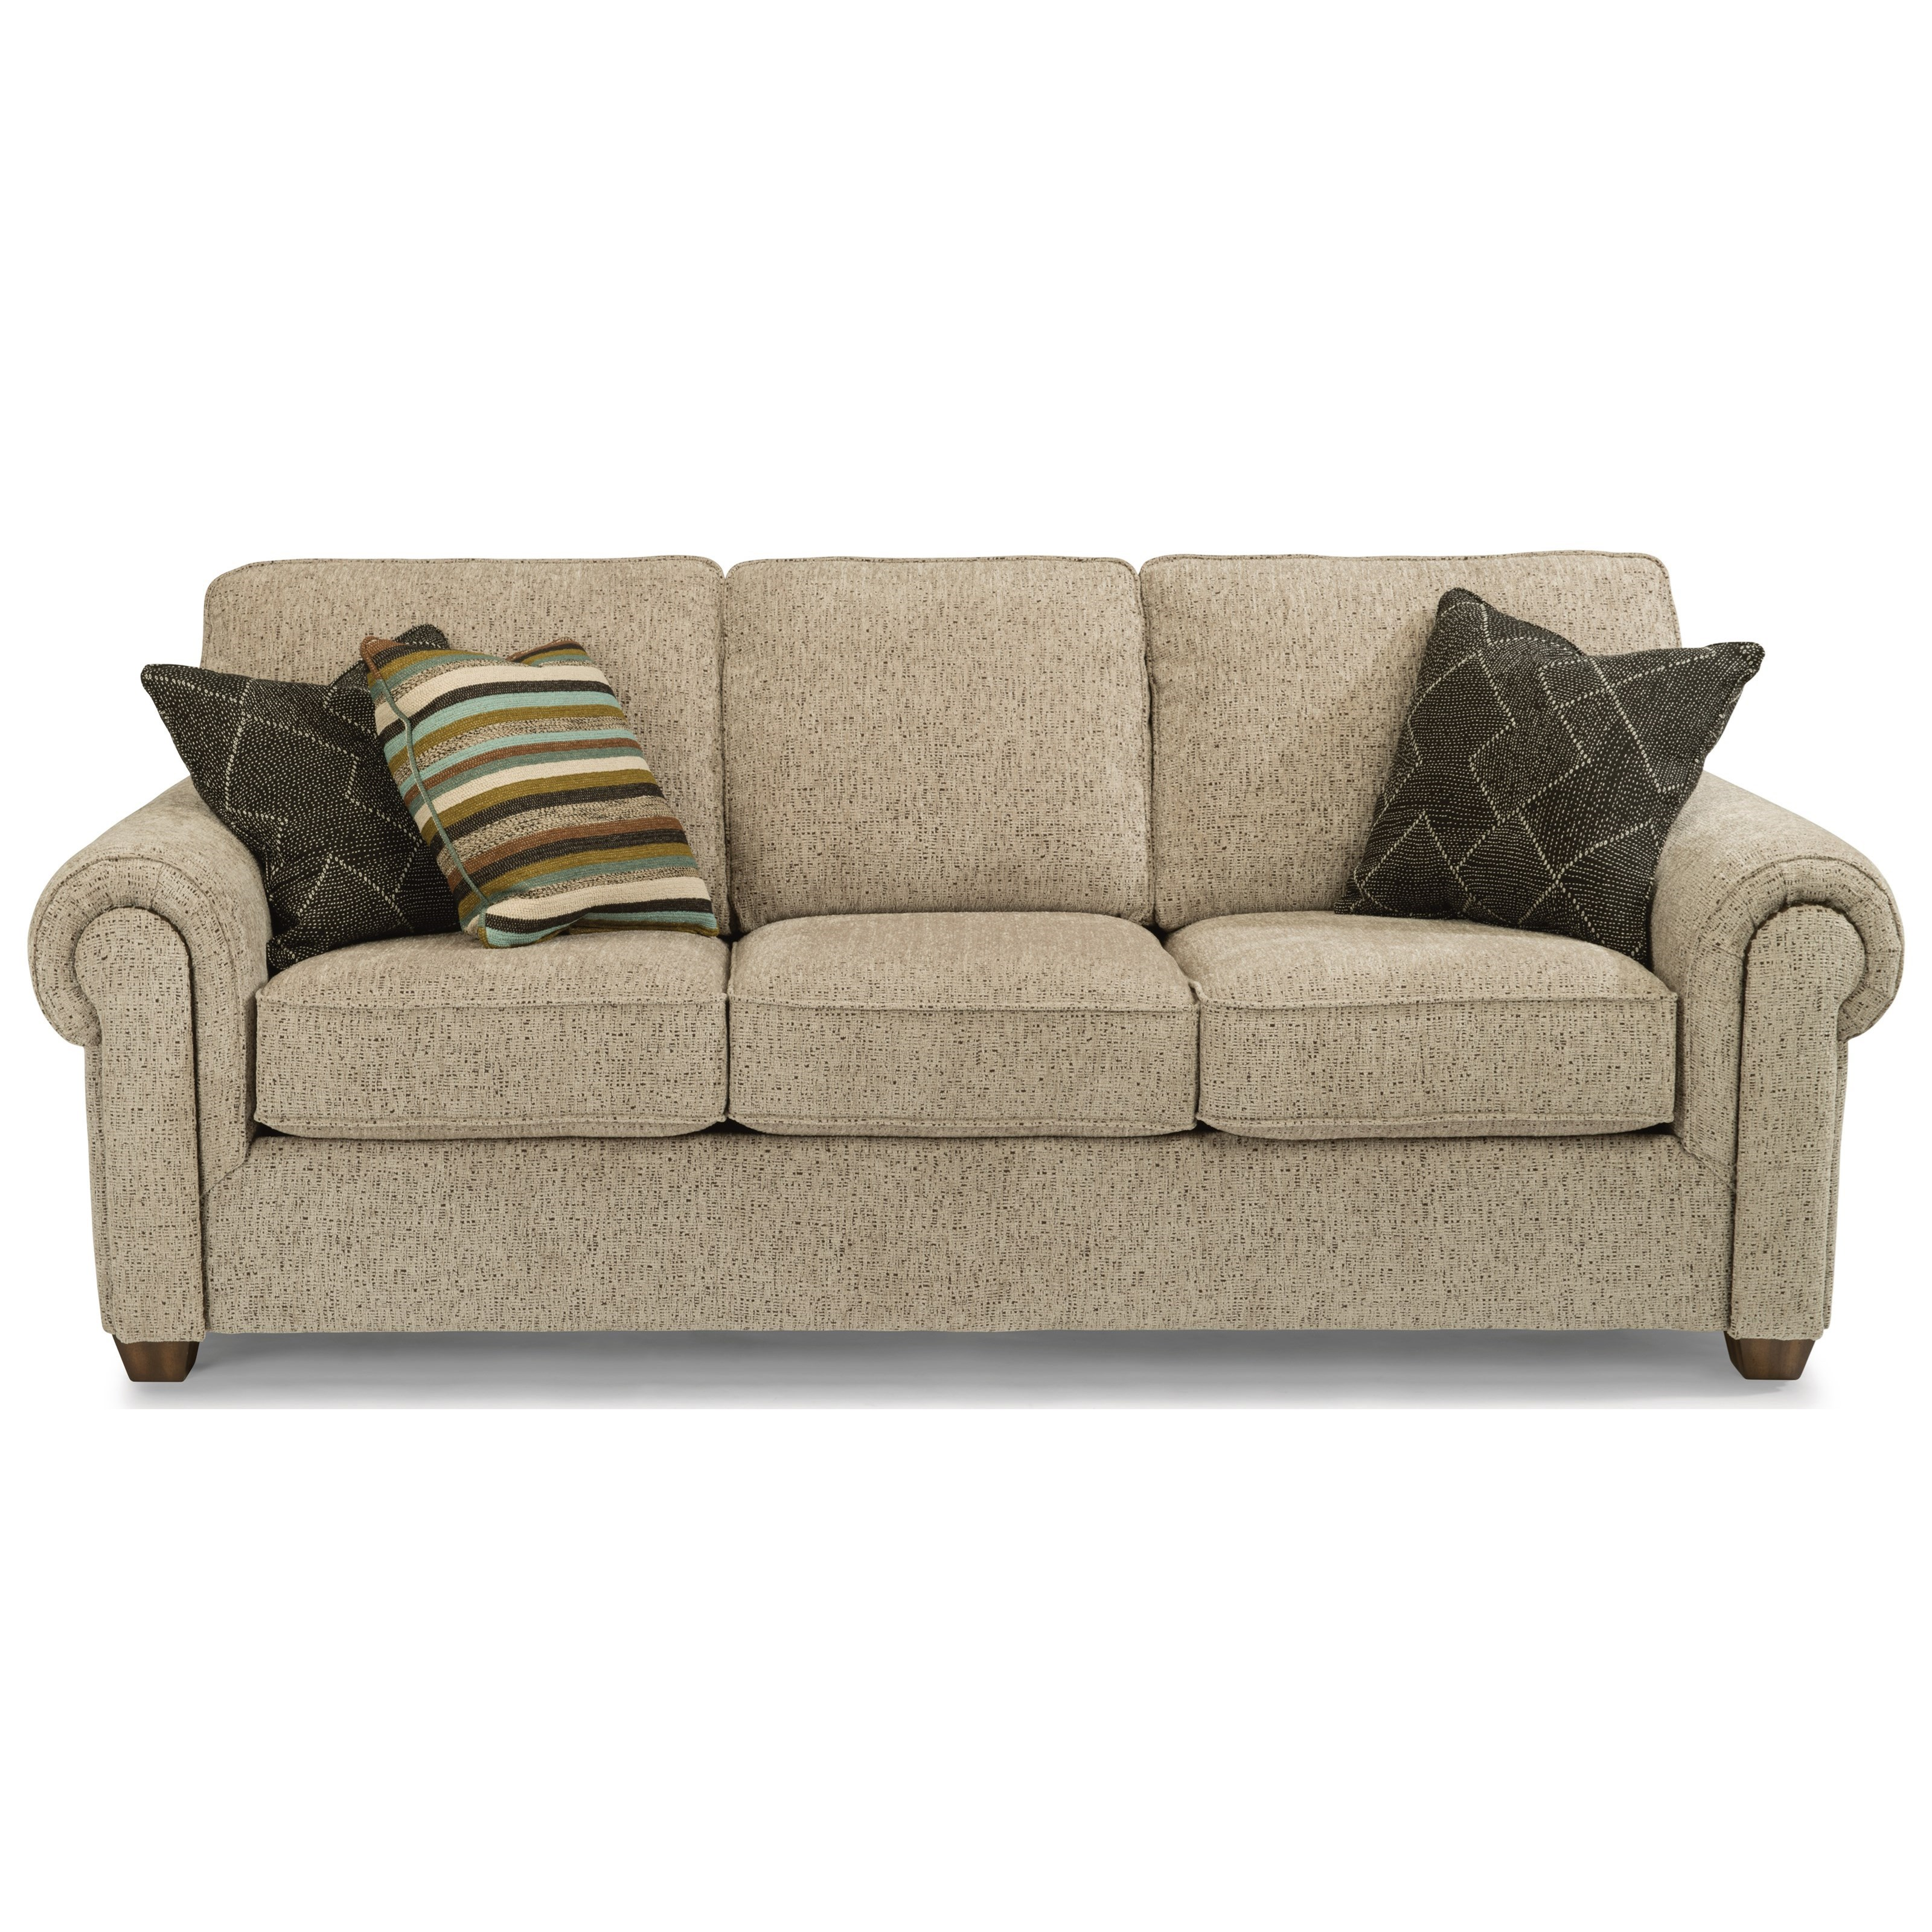 Flexsteel Carson Customizable Sofa With Rolled Arms Wayside